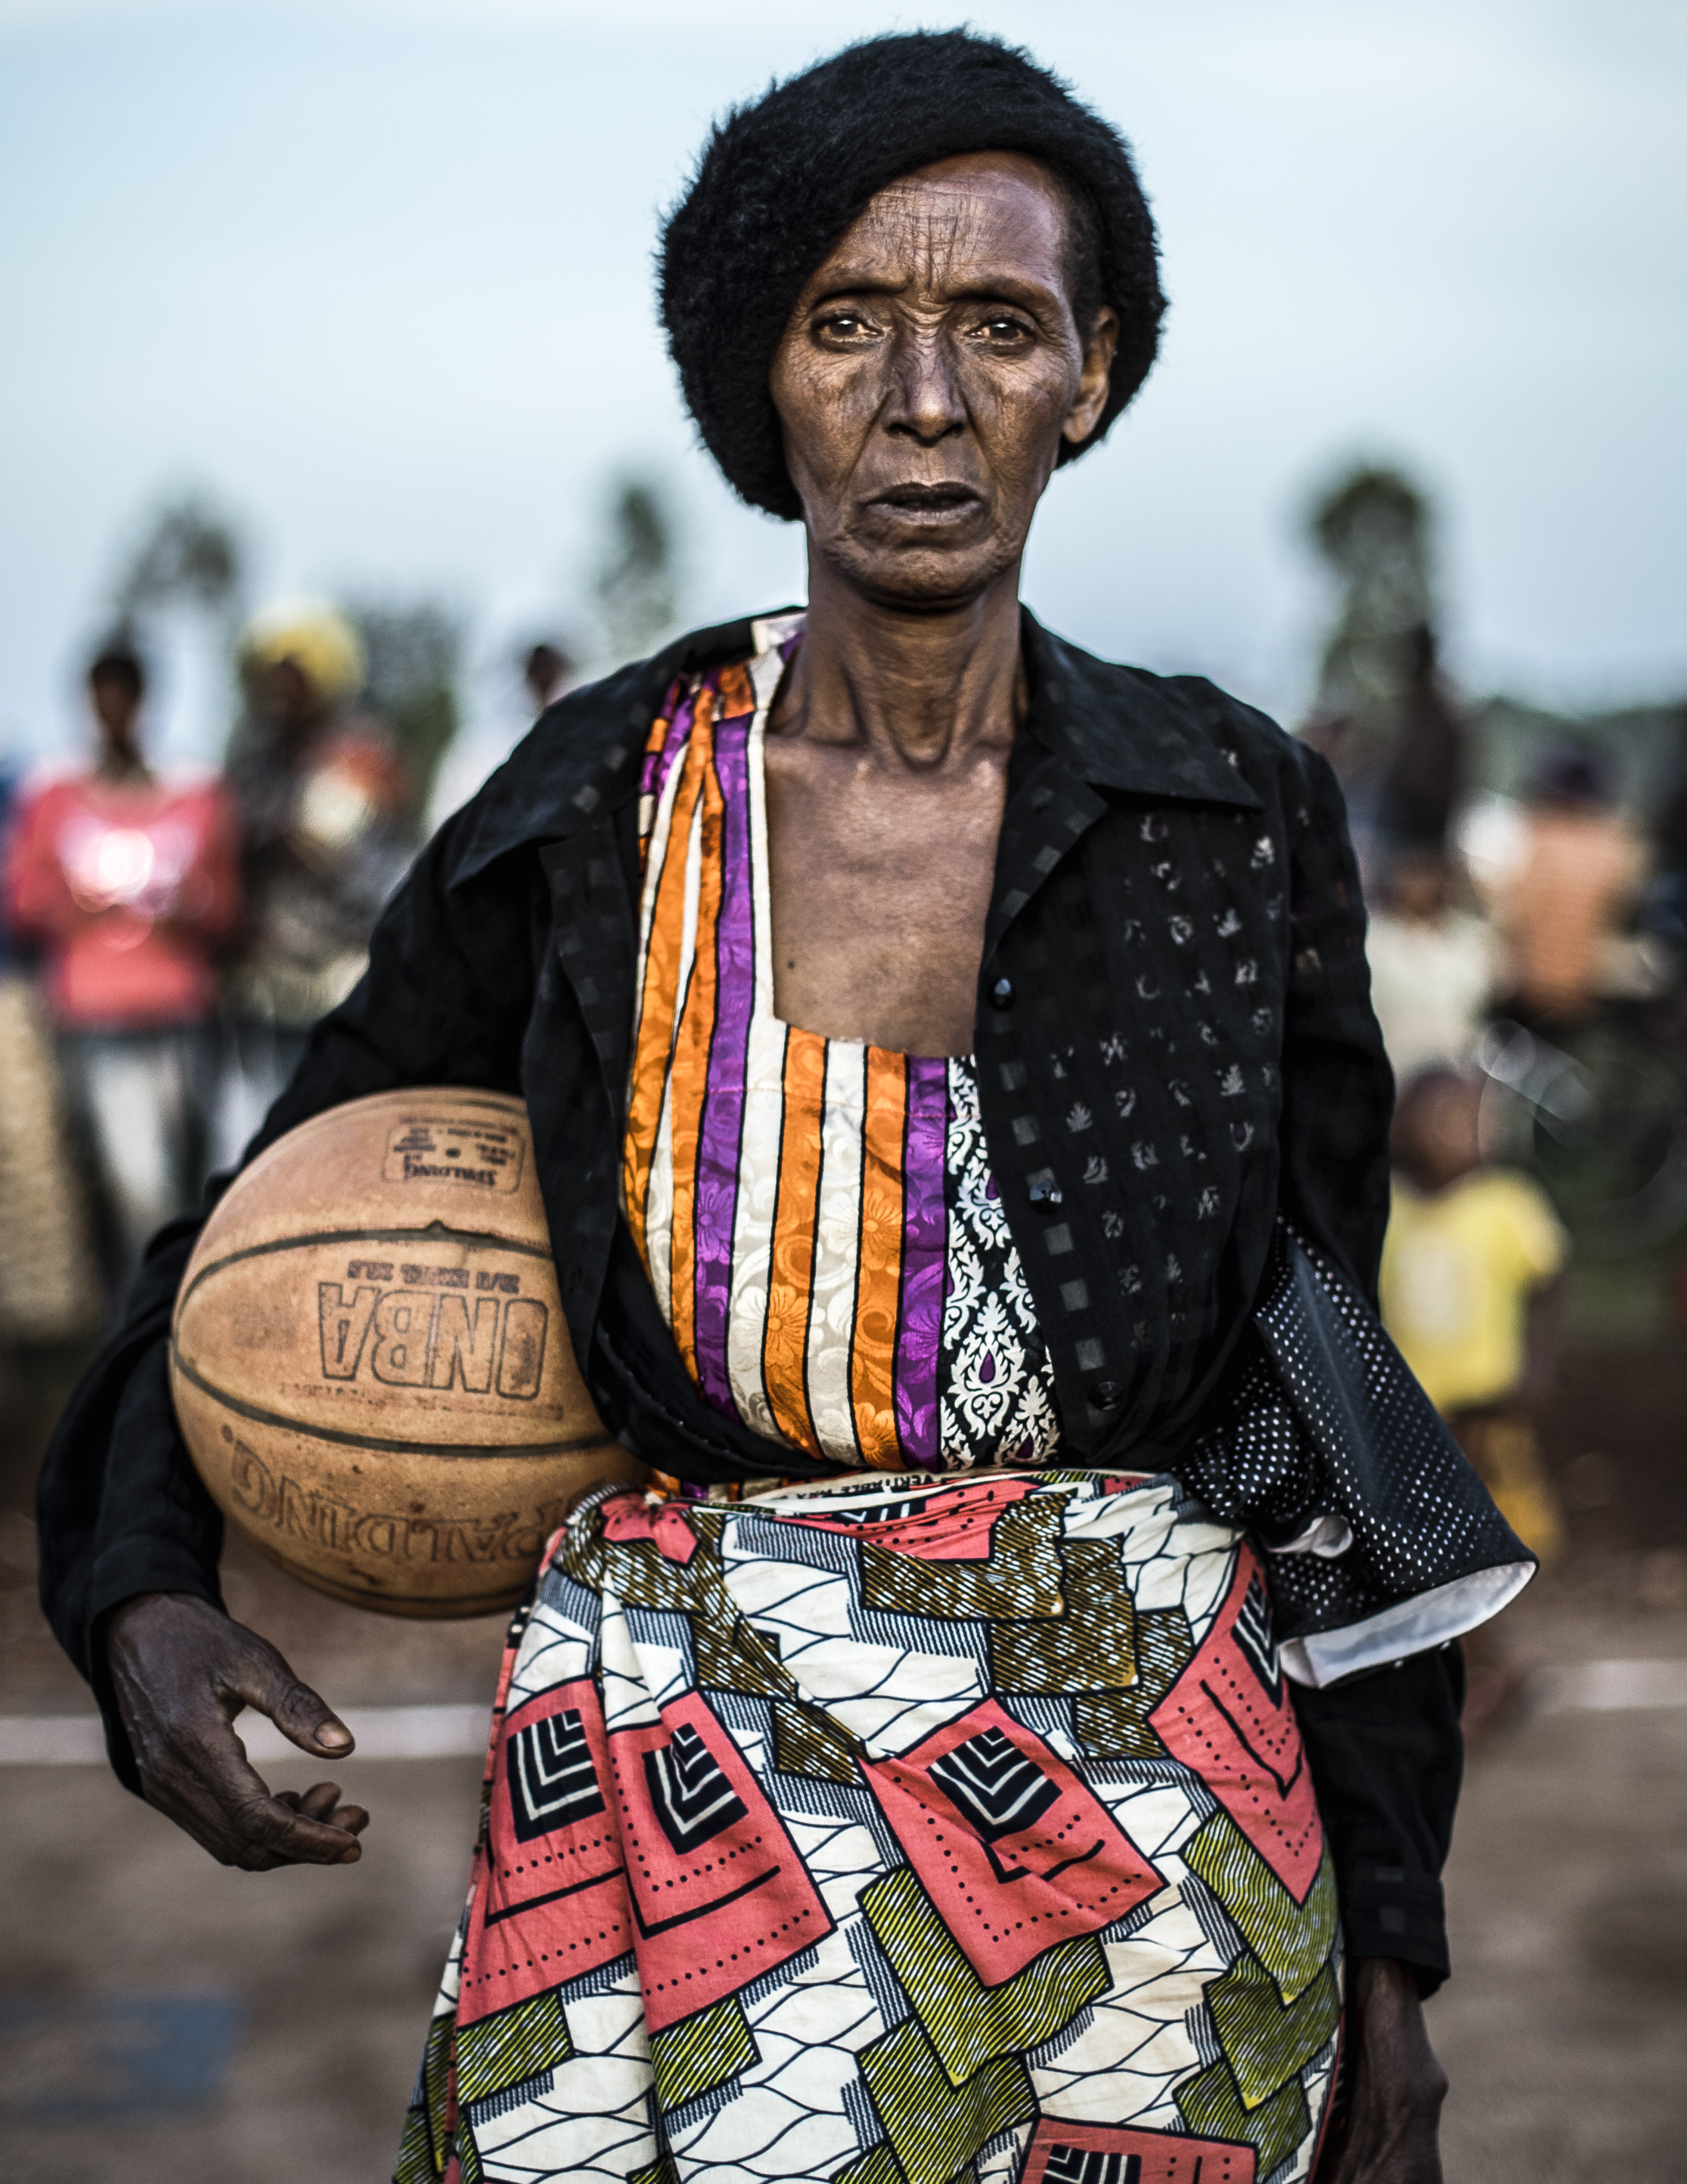 Part of an ongoing project documenting the recent interest in basketball throughout Rwanda. Shot in partnership with Shooting Touch, an international sport-for-development organization that uses the power of sport to educate and empower at-risk youth, women and their communities to live healthier lives.